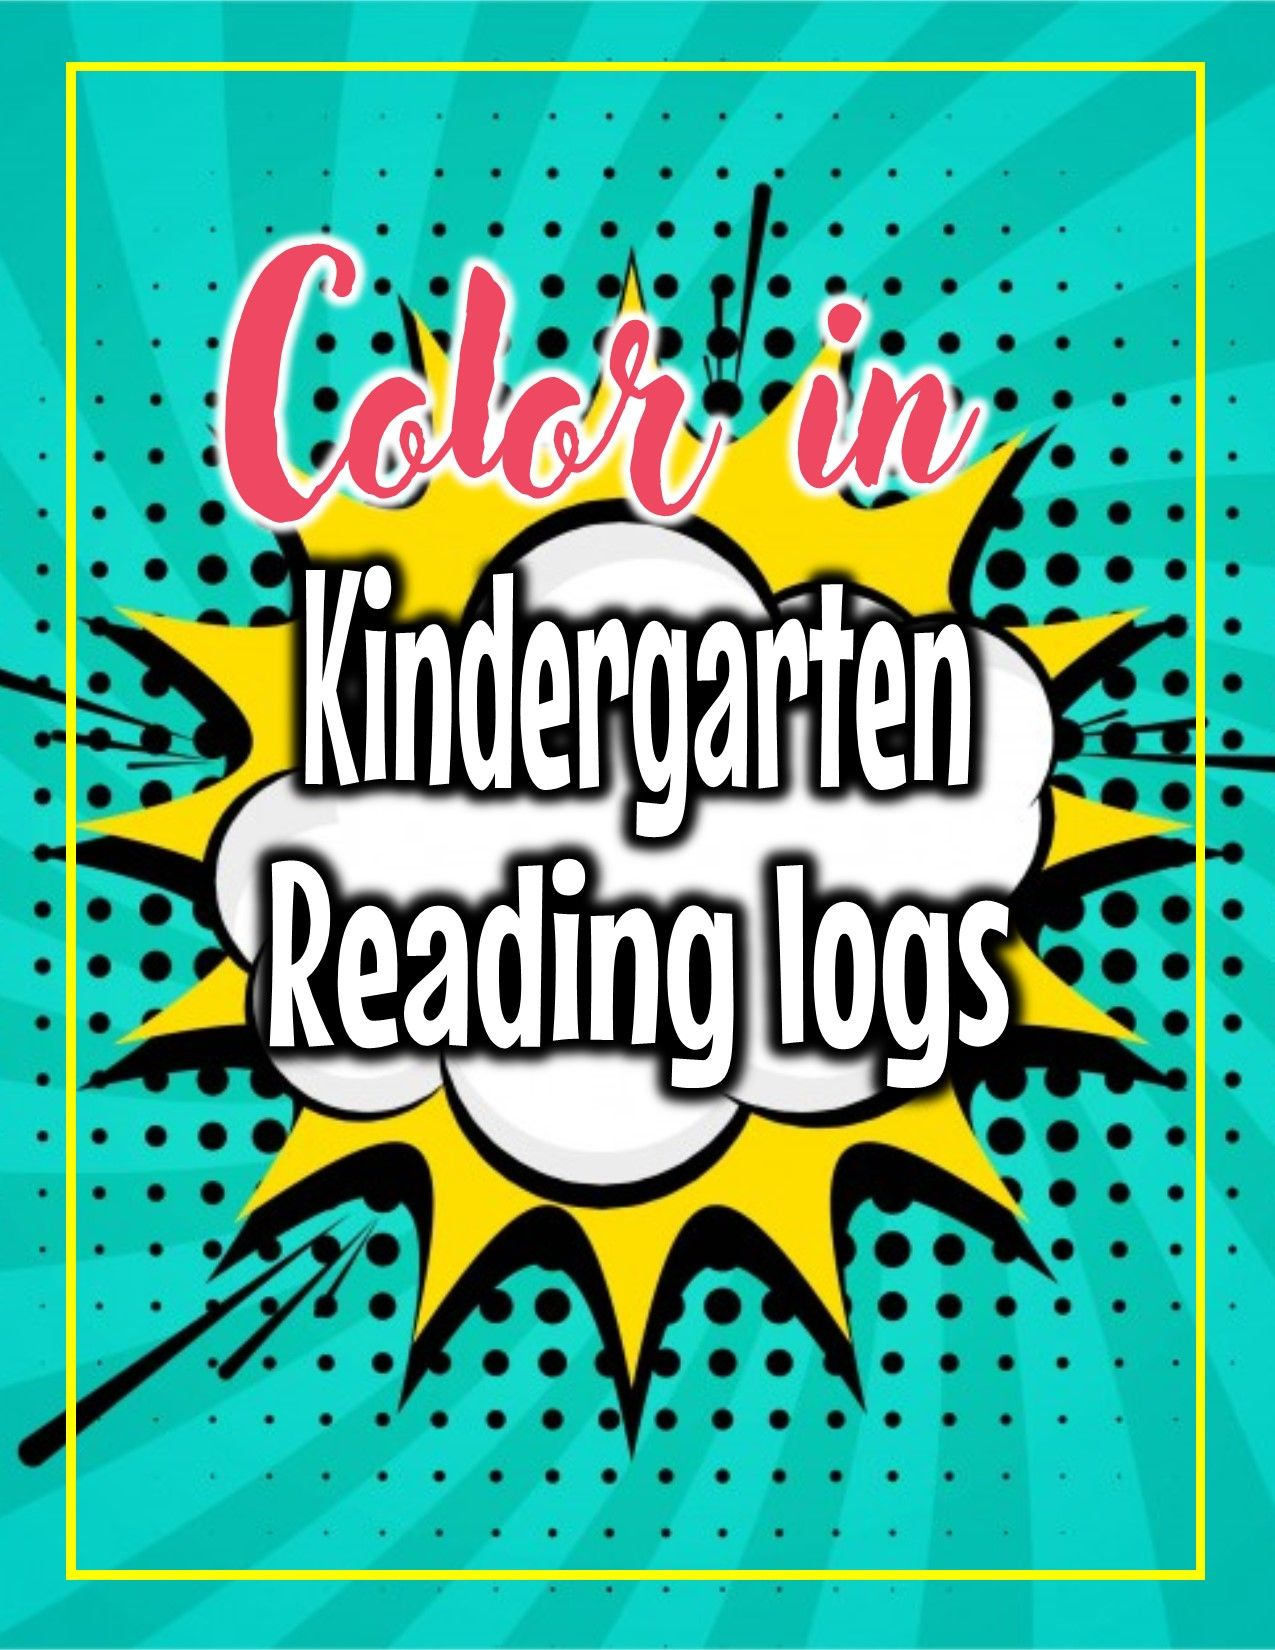 Read And Color Reading Logs Kindergarten Pre K